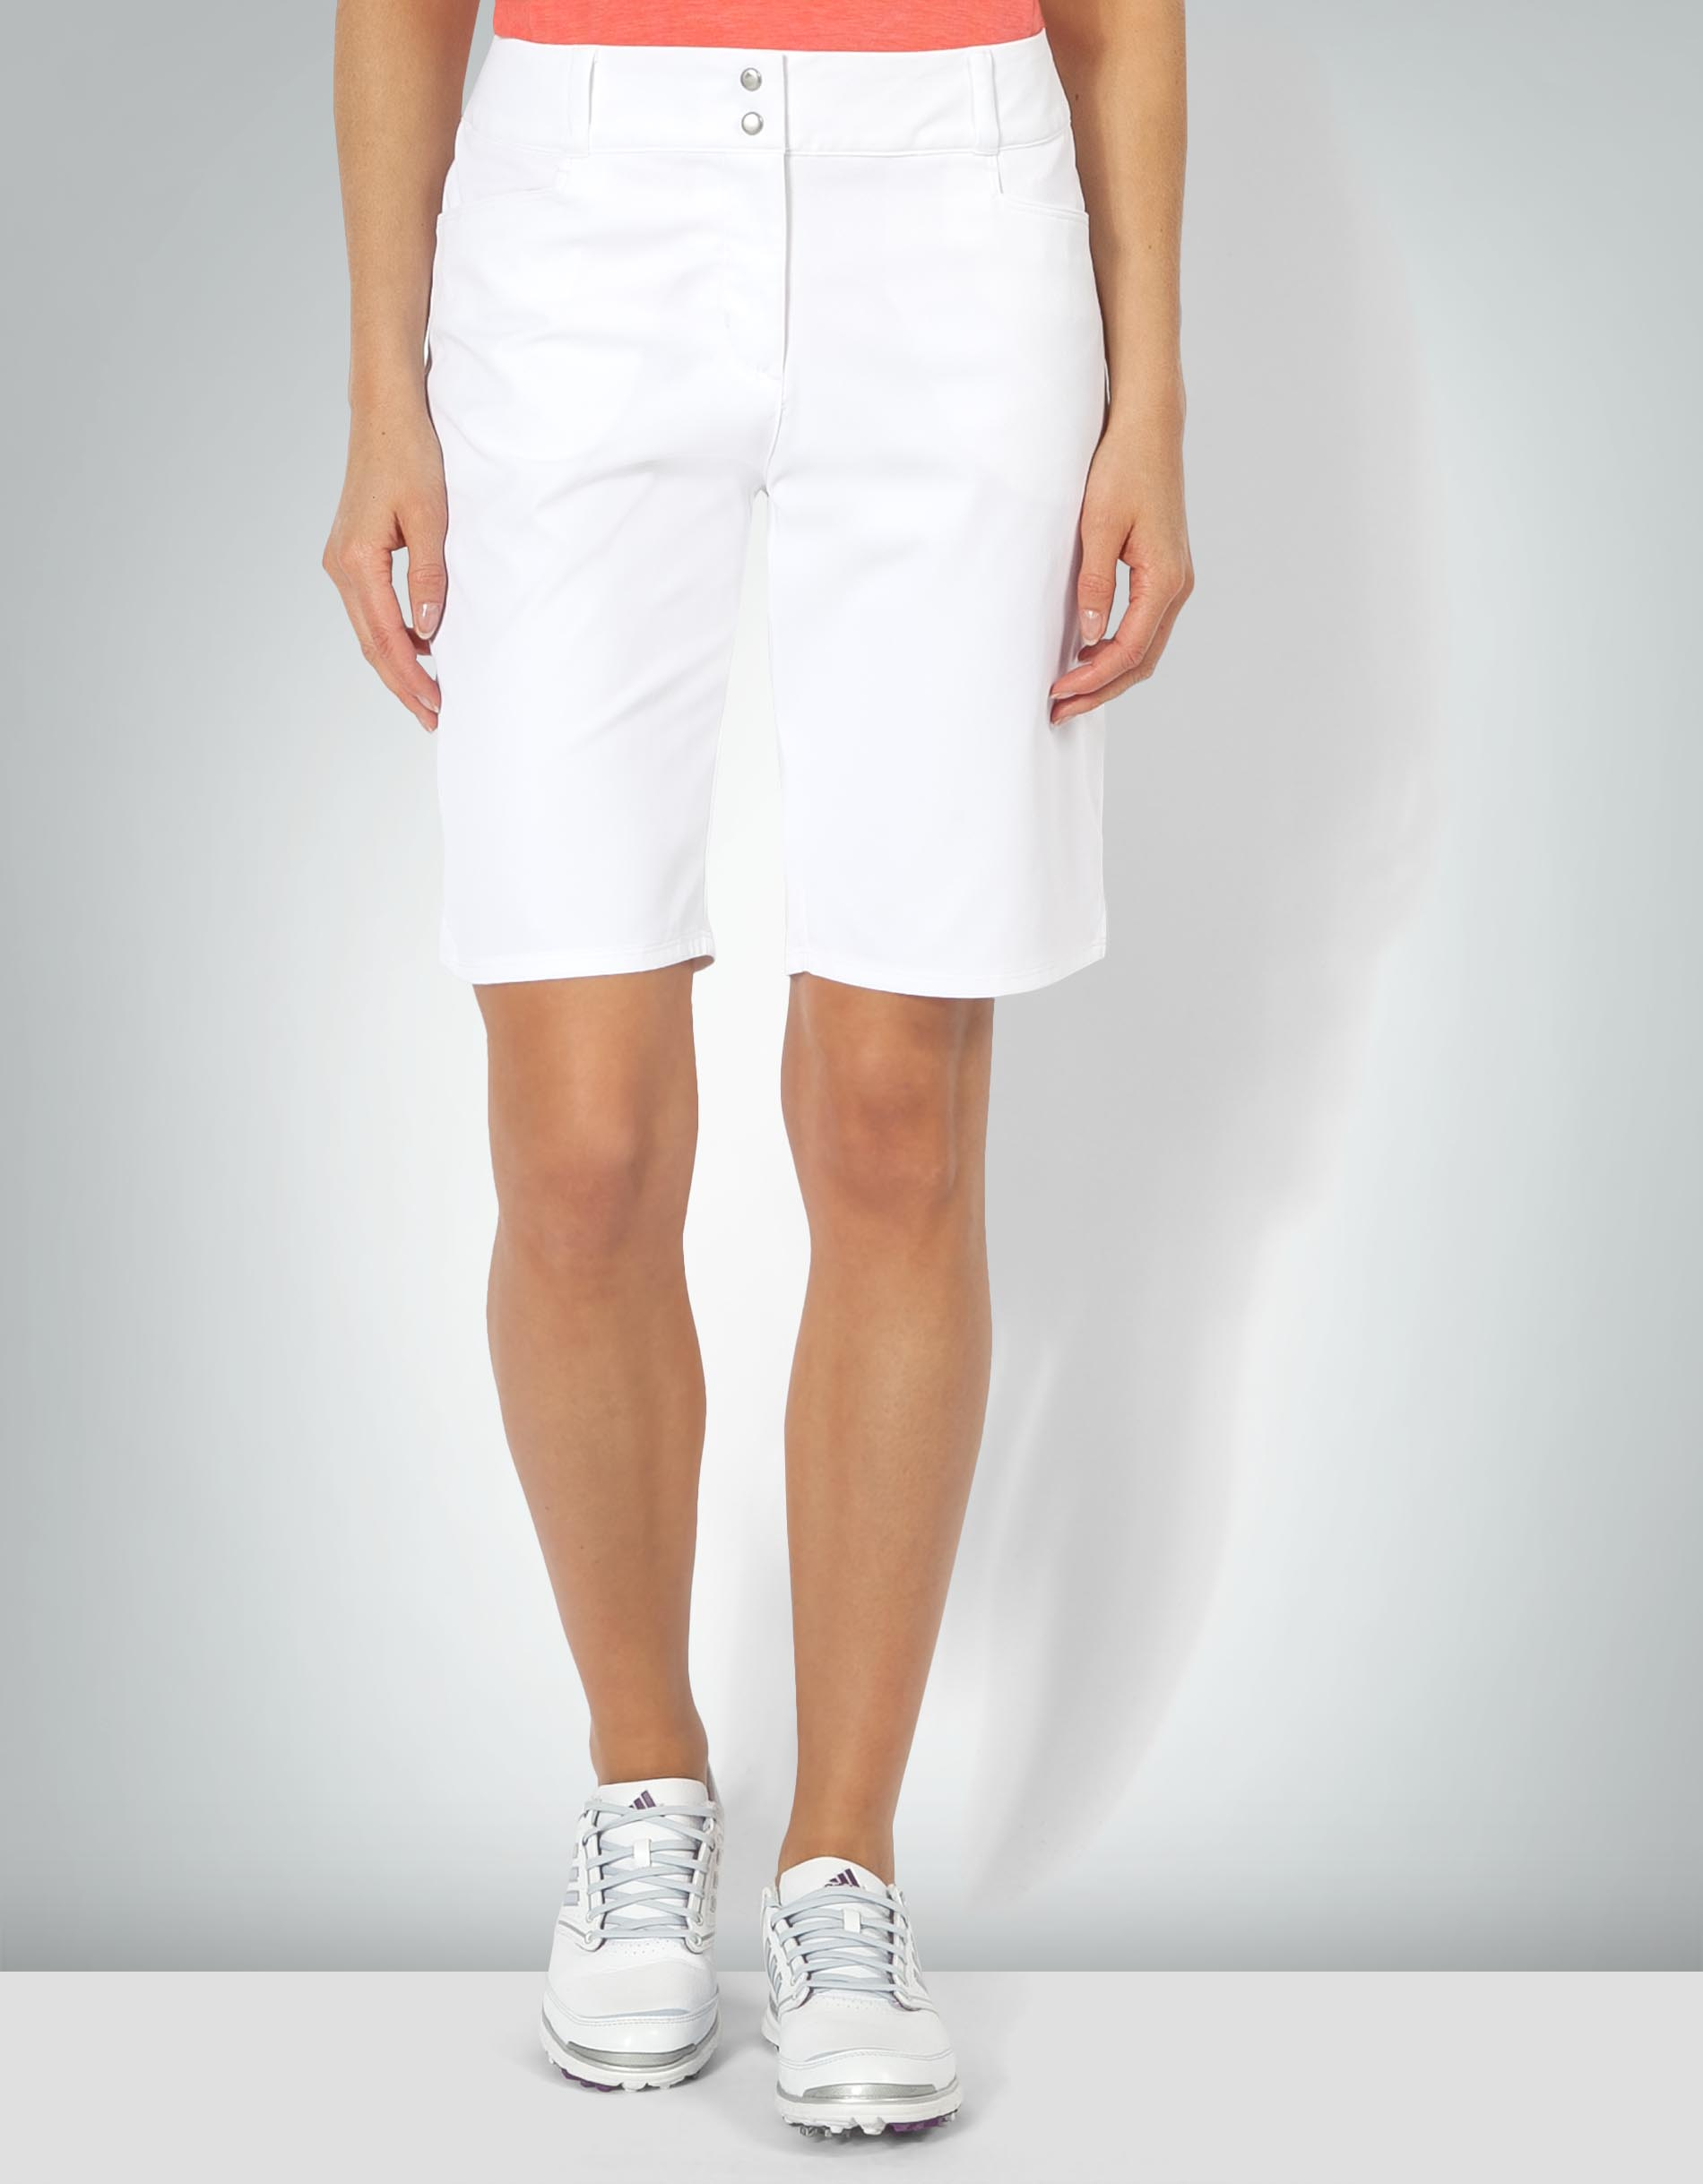 innovative design free shipping best online adidas Golf Damen Shorts weiß Golf- aus Mikrofaser empfohlen ...